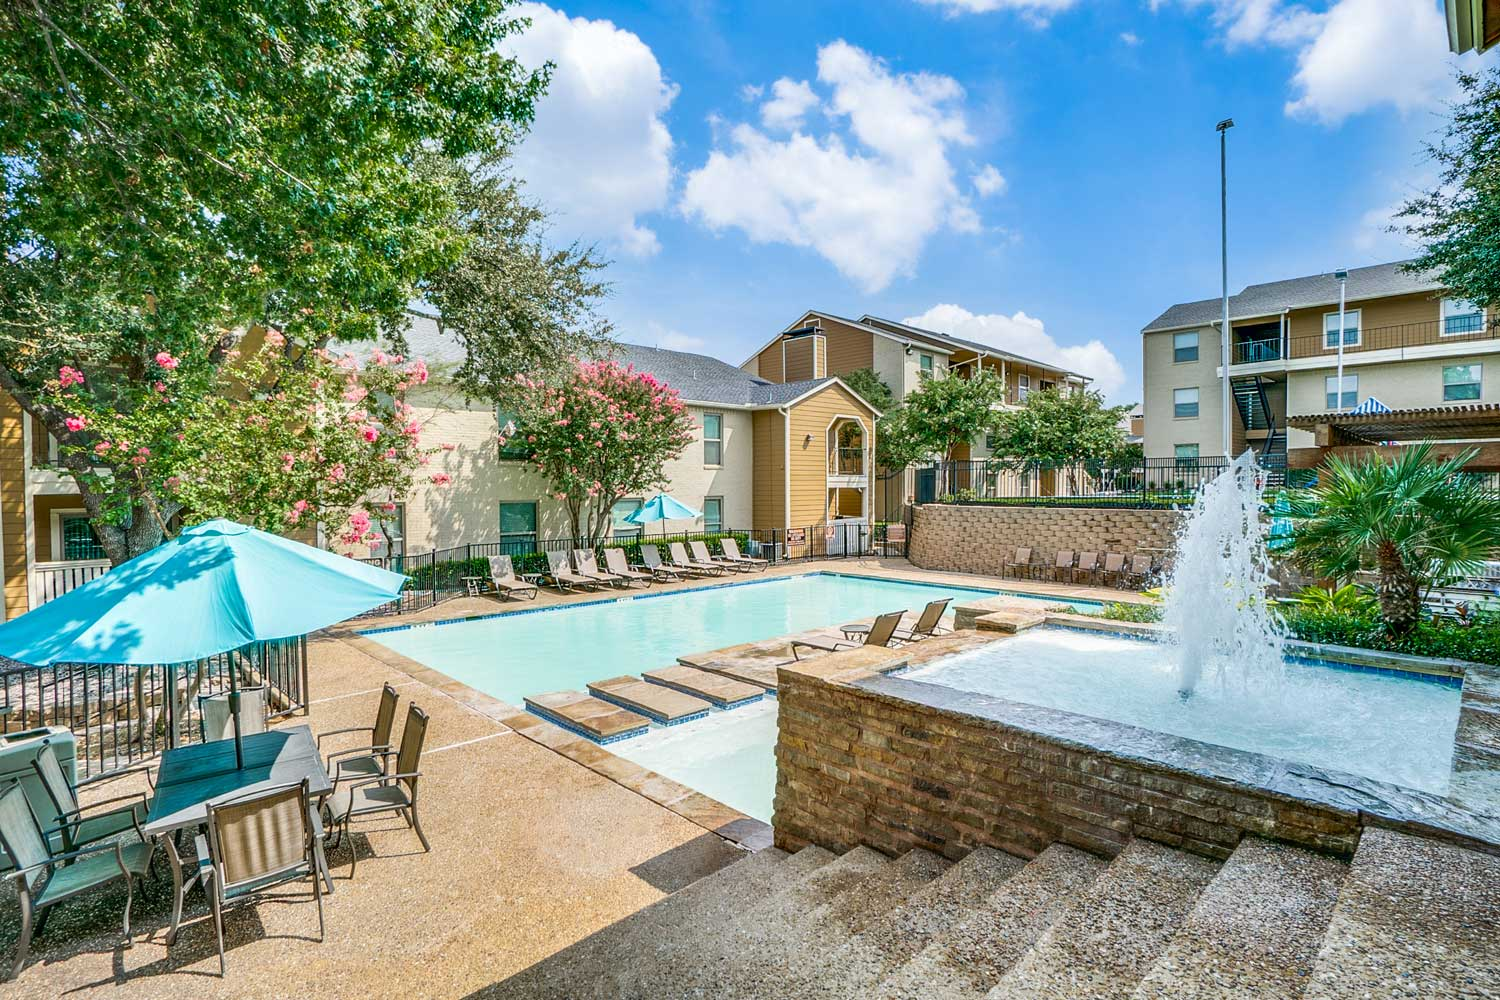 Outdoor Swimming Pool at Riviera Apartments in Dallas, Texas